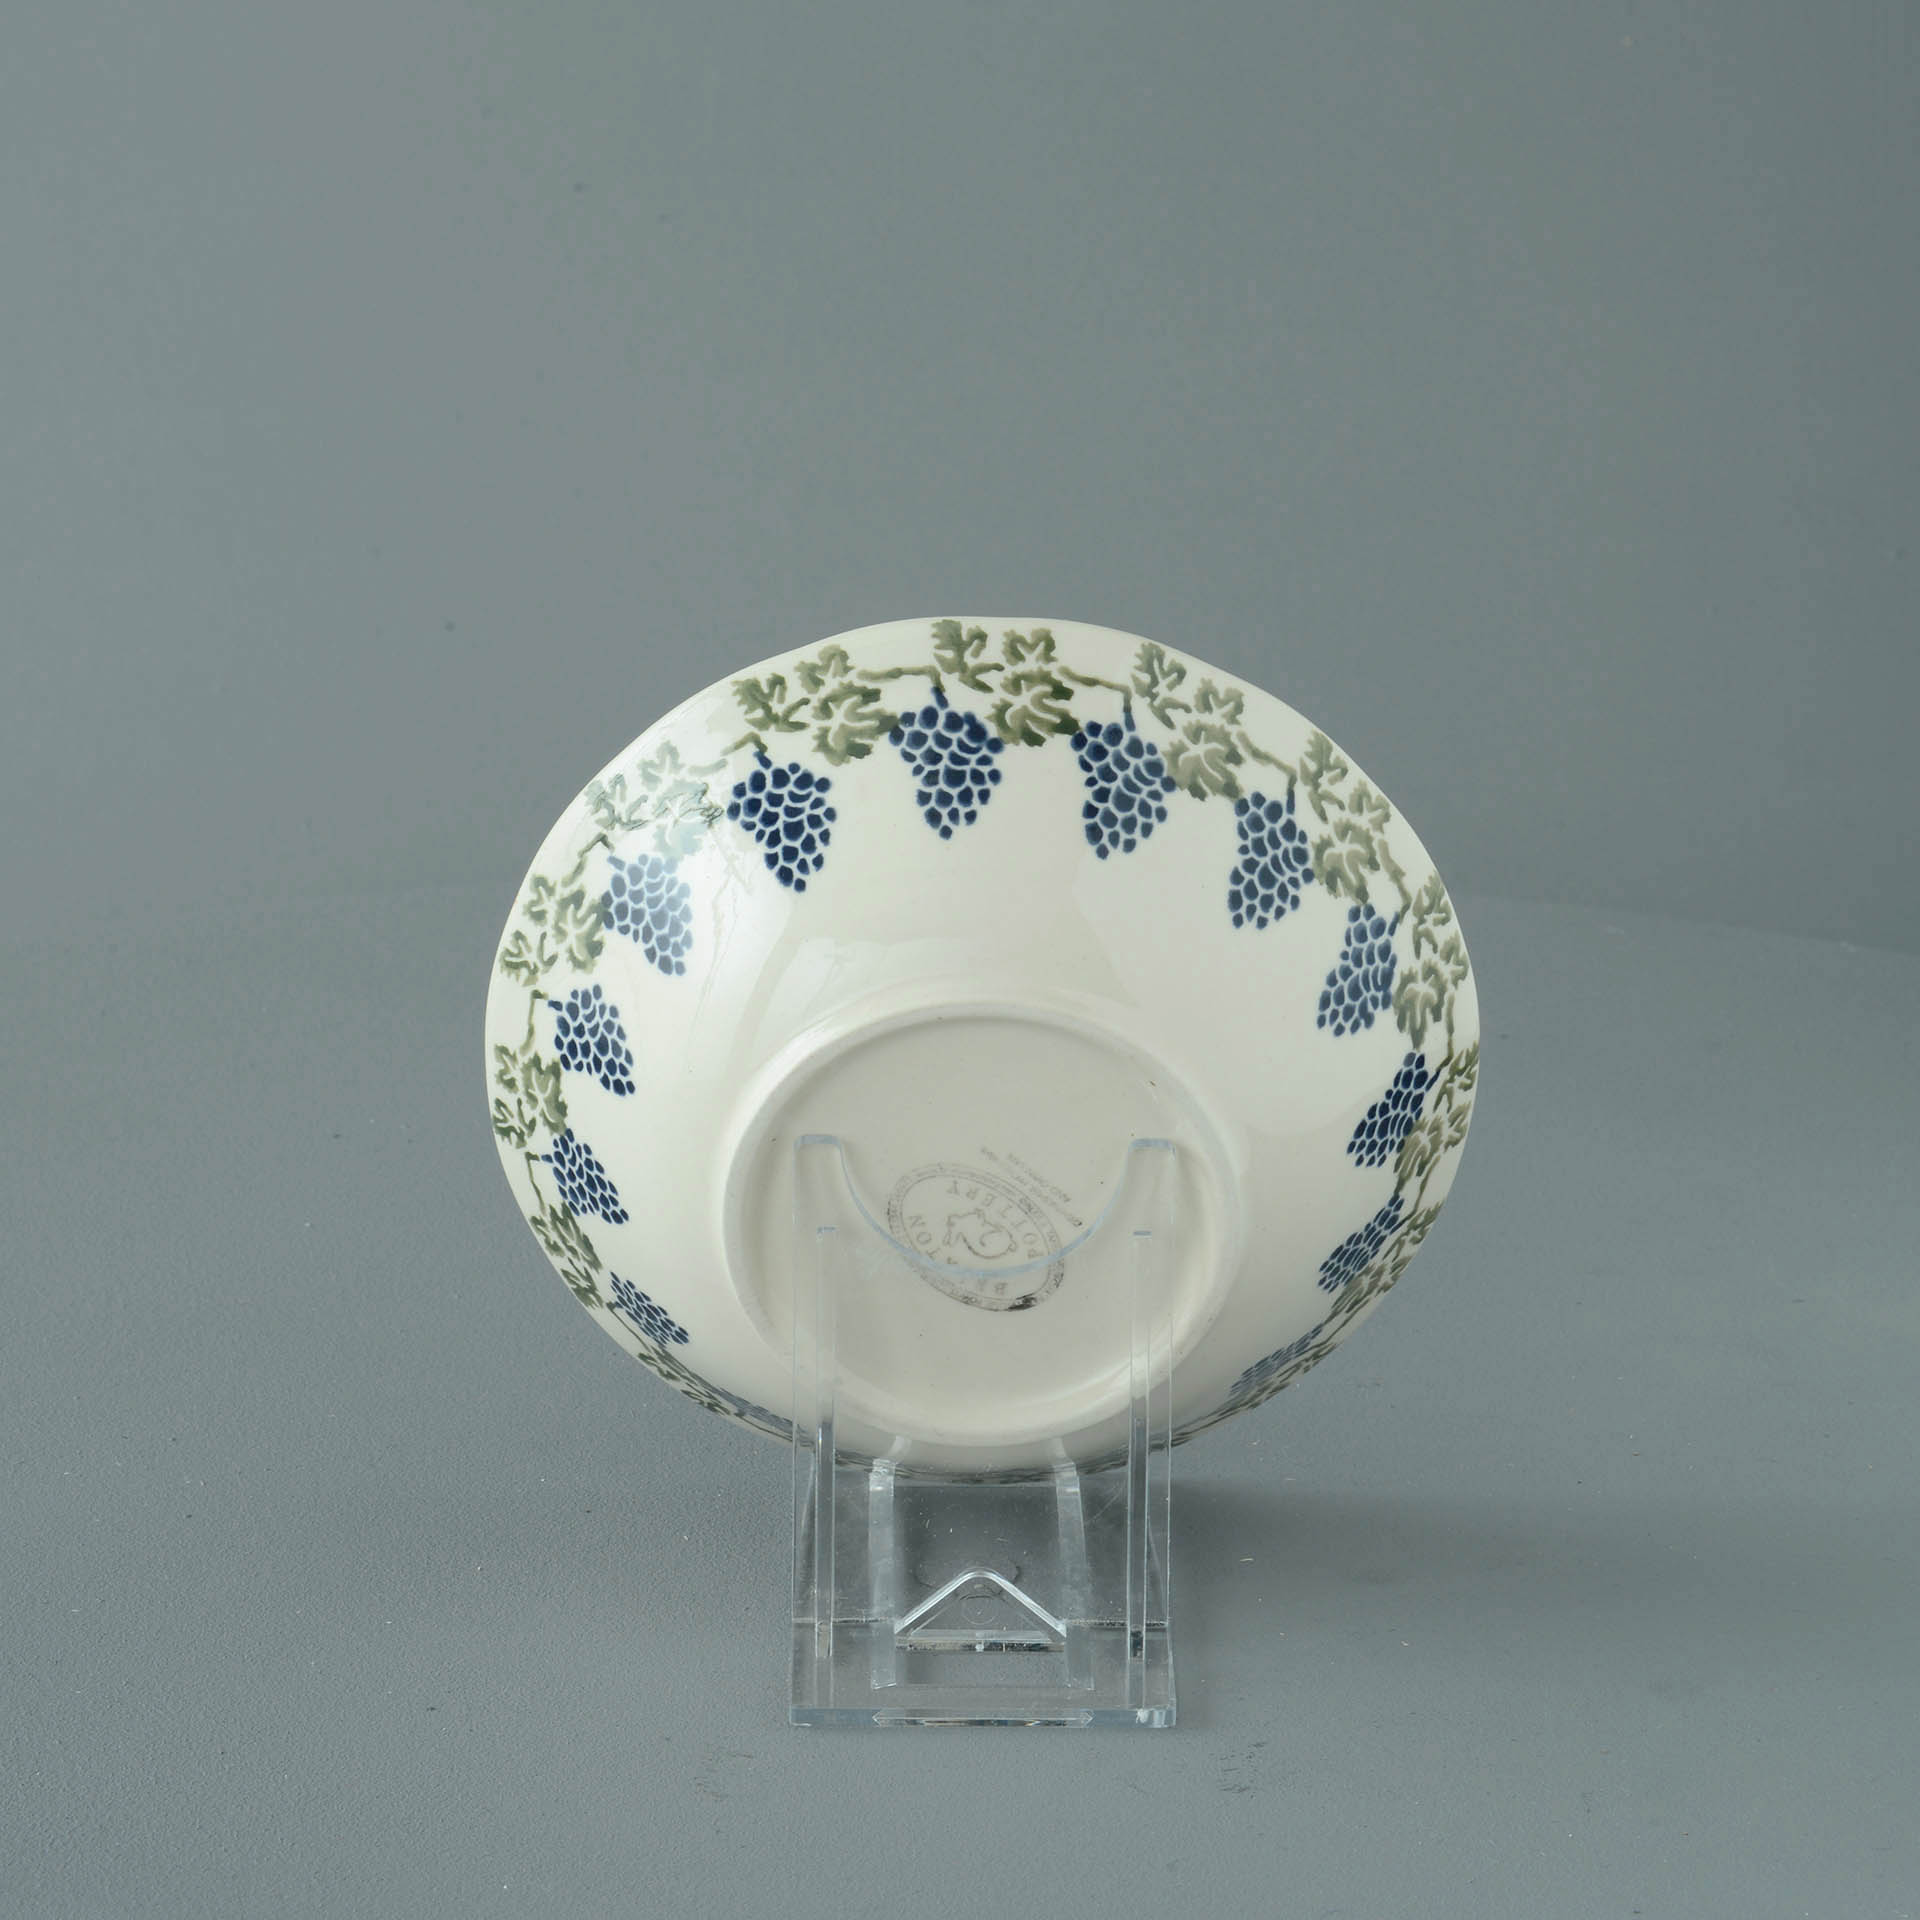 Grapes and Vine Baby Bowl 4.5 x 15cm